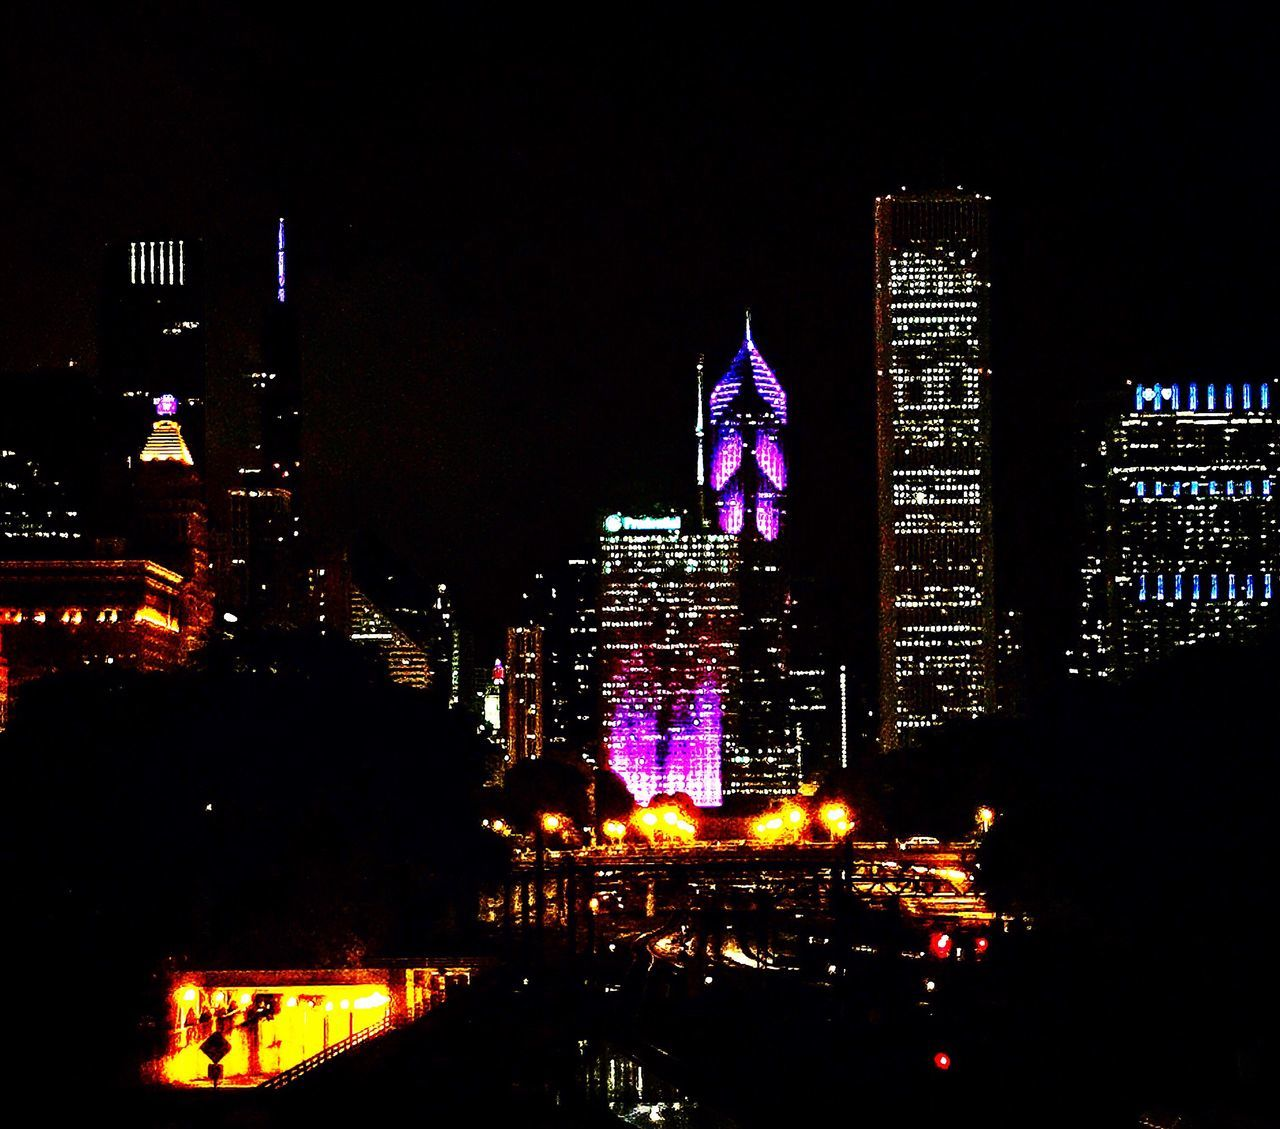 City lights✨✨ Night Night Lights Skyline In Chicago Skyline Colors Colour Of Life Eye4photography  Eyeemgallery EyeEm EyeEm Best Edits EyeEmBestPics Eyemphotography IPhone Amazing View Architecture